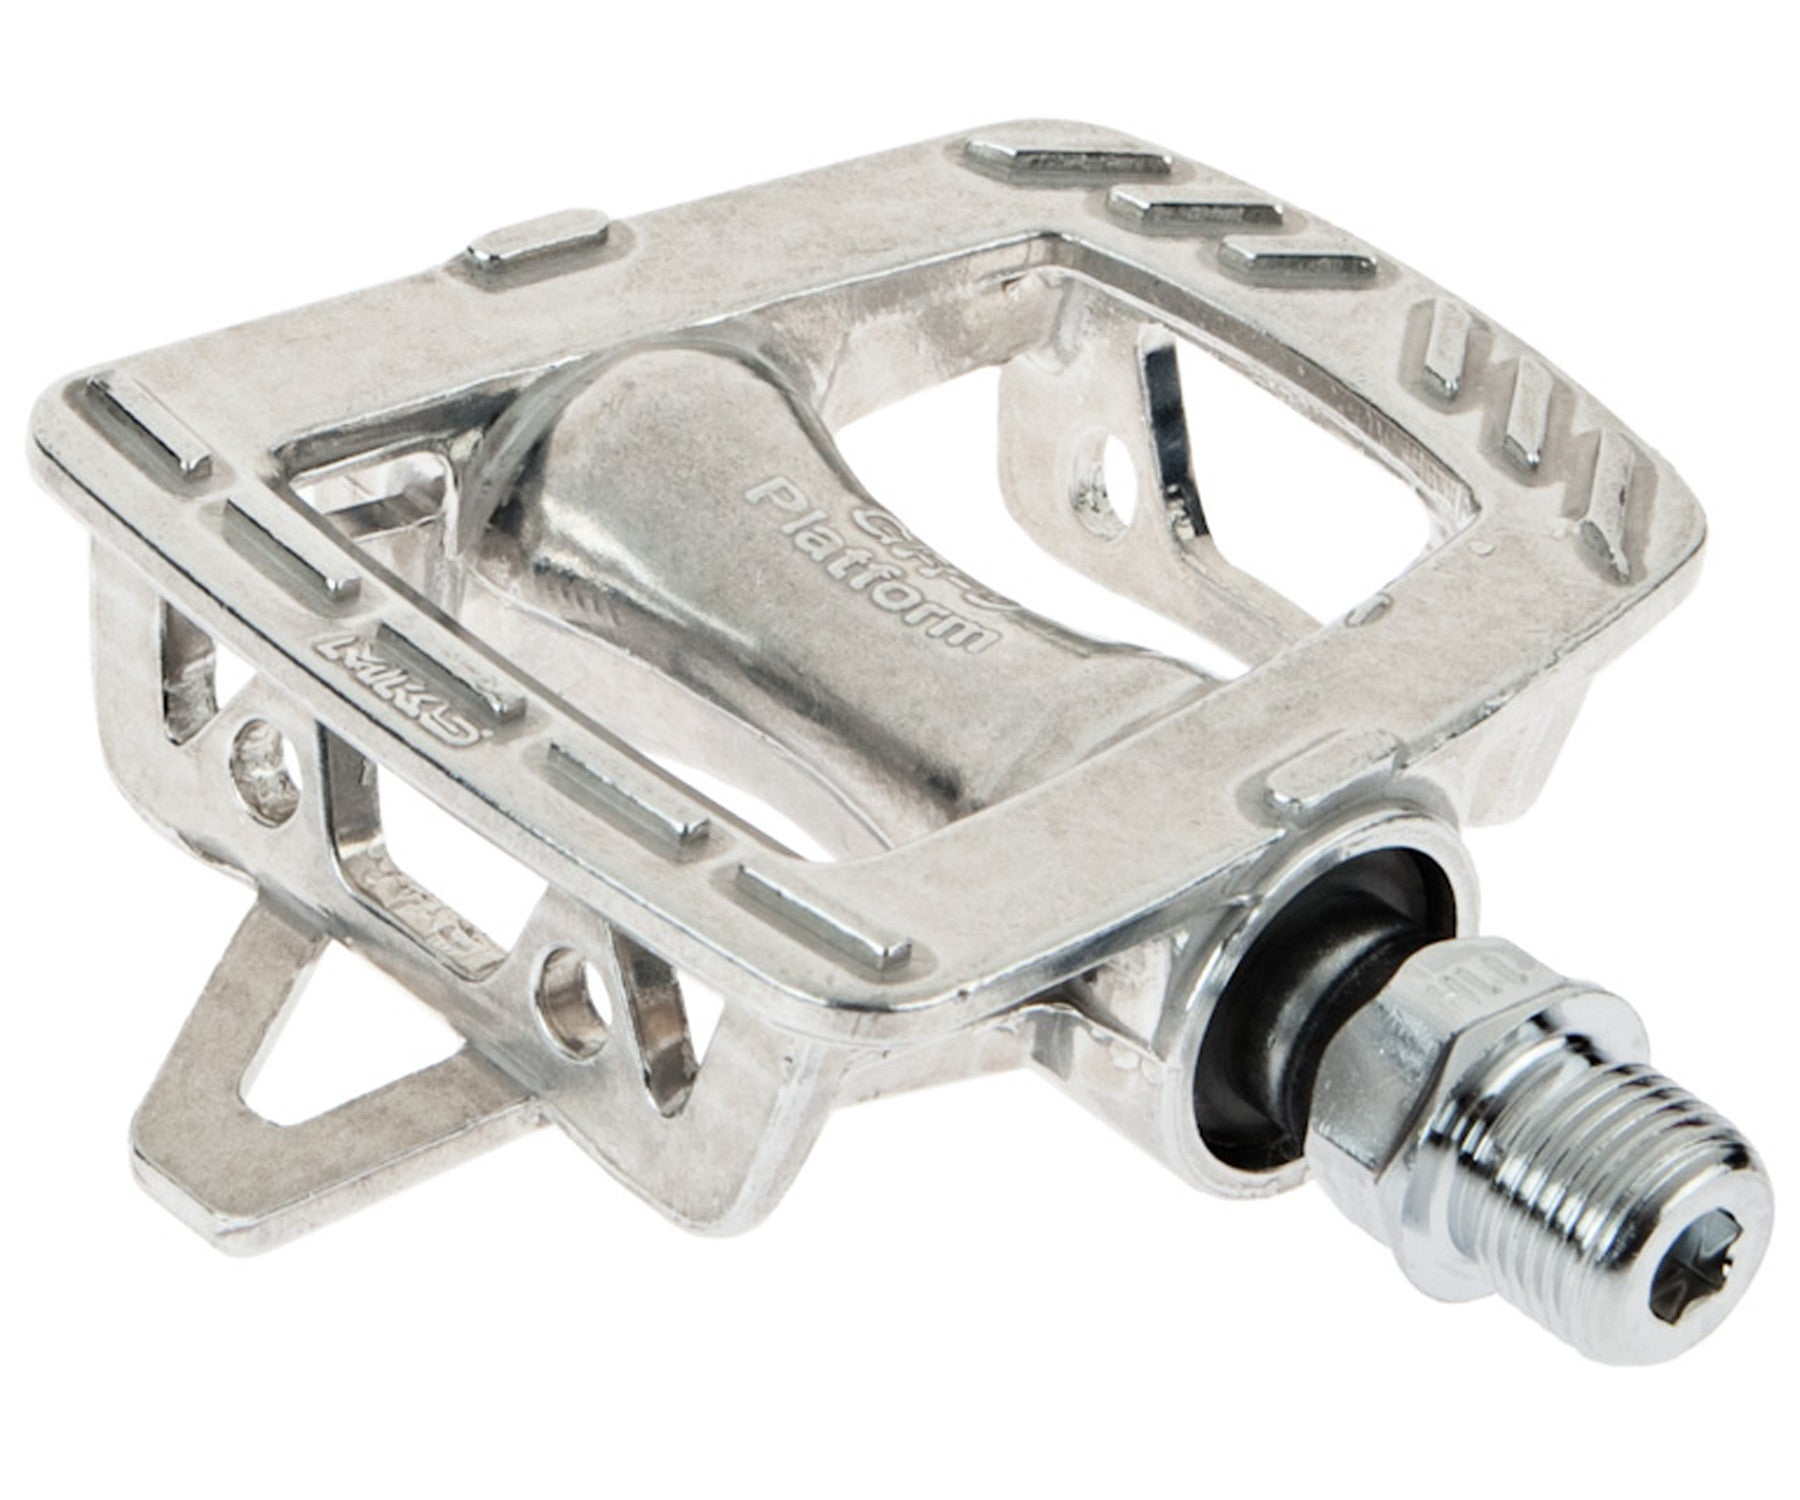 MKS GR-9 pedals - Retrogression